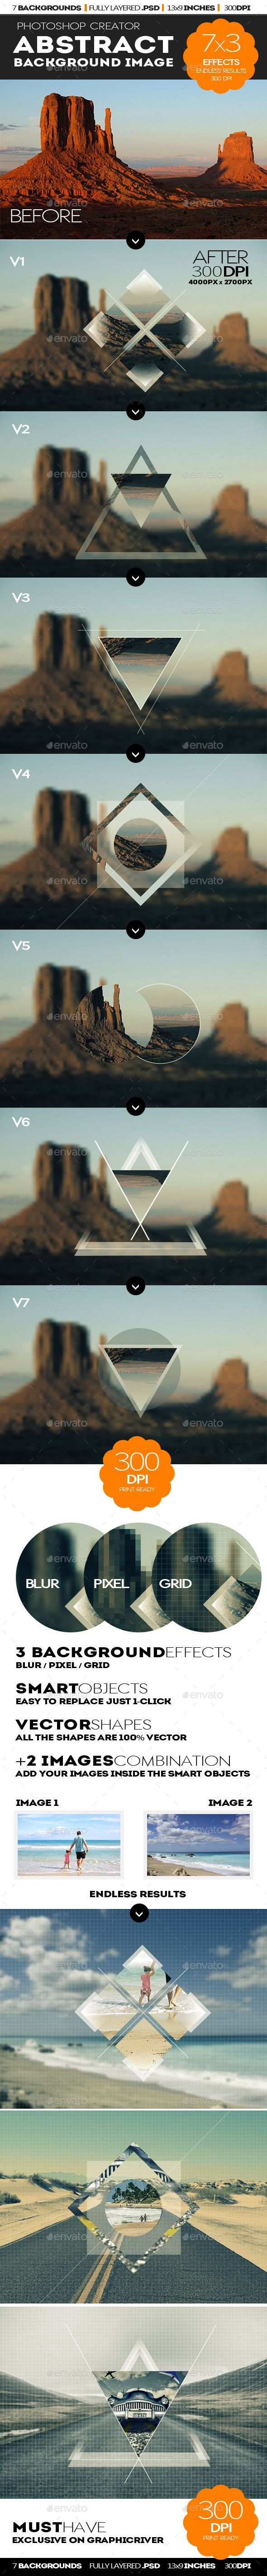 Geometric Double Exposure Photoshop Creator by psddude This set contains 1 PSD mockup file and 8 Photoshop actions for customization purposes that will allow you to create geometric photo effects. ...